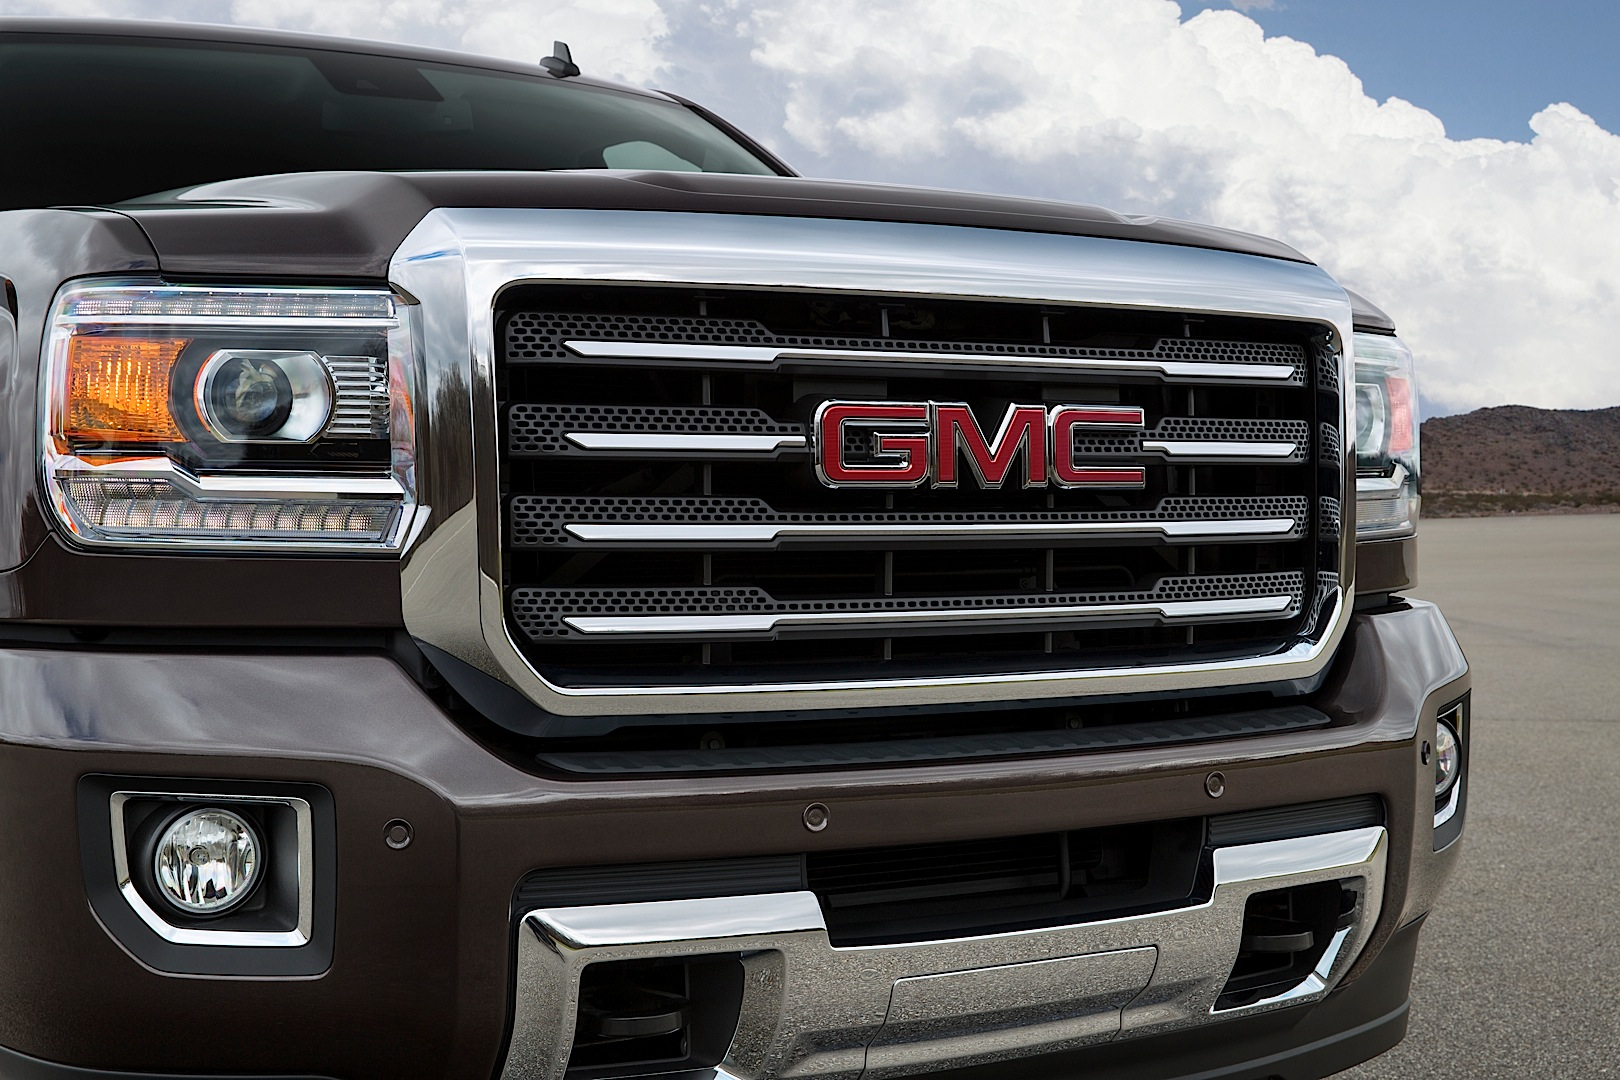 2015 gmc sierra all terrain hd unveiled autoevolution. Black Bedroom Furniture Sets. Home Design Ideas